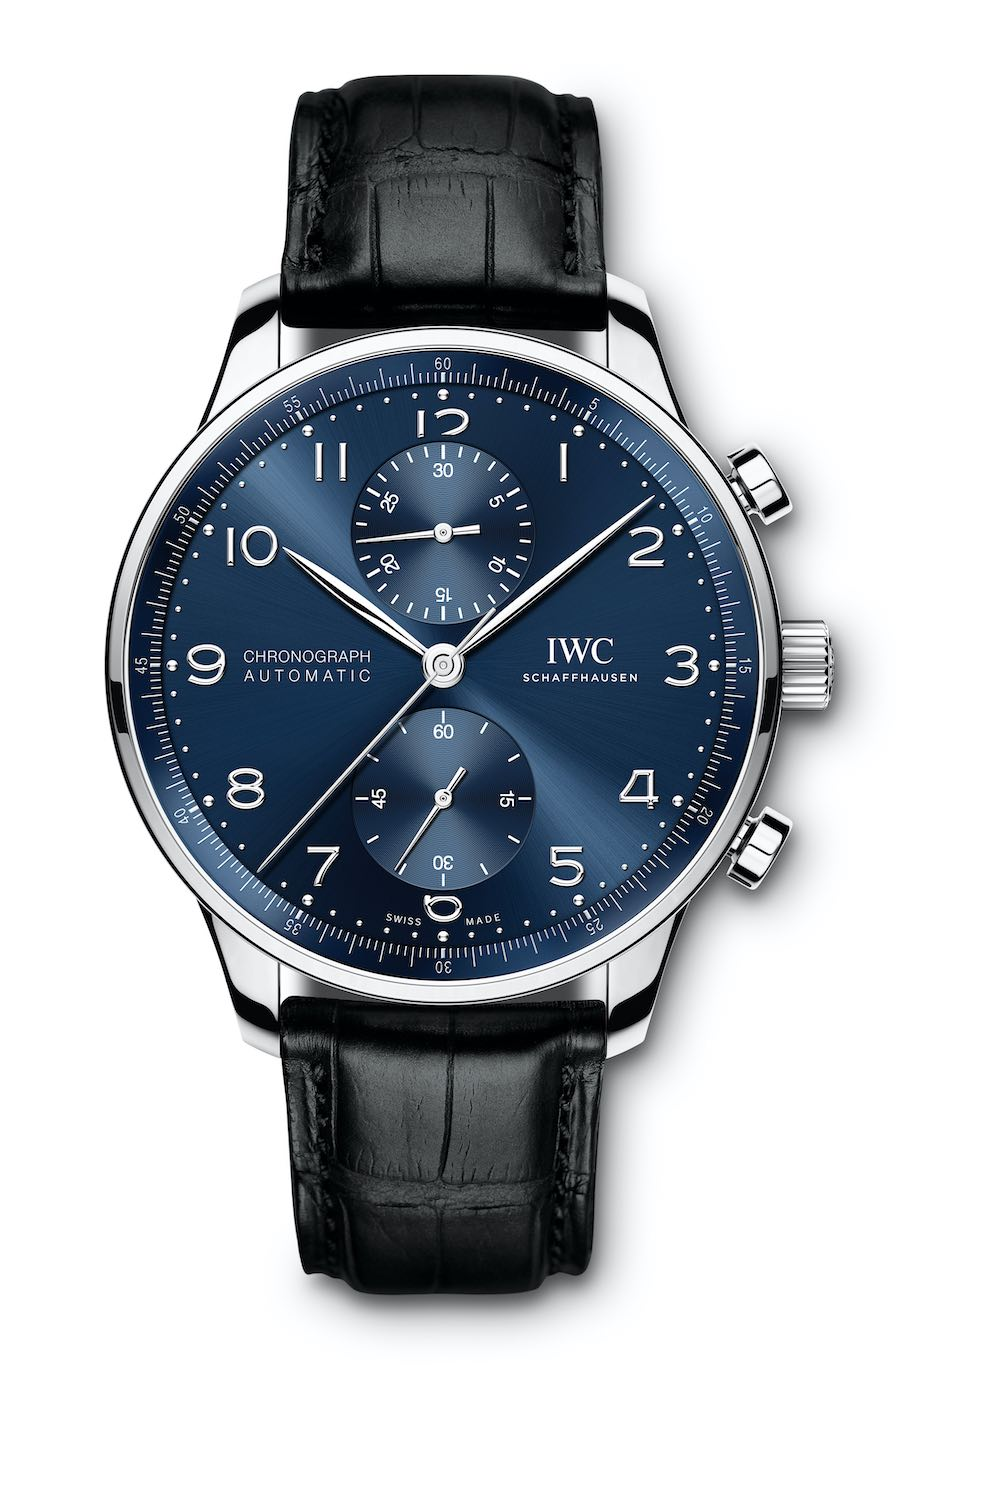 IWC Portugieser Chronograph iw3716 in-house calibre 69335 - iw371606